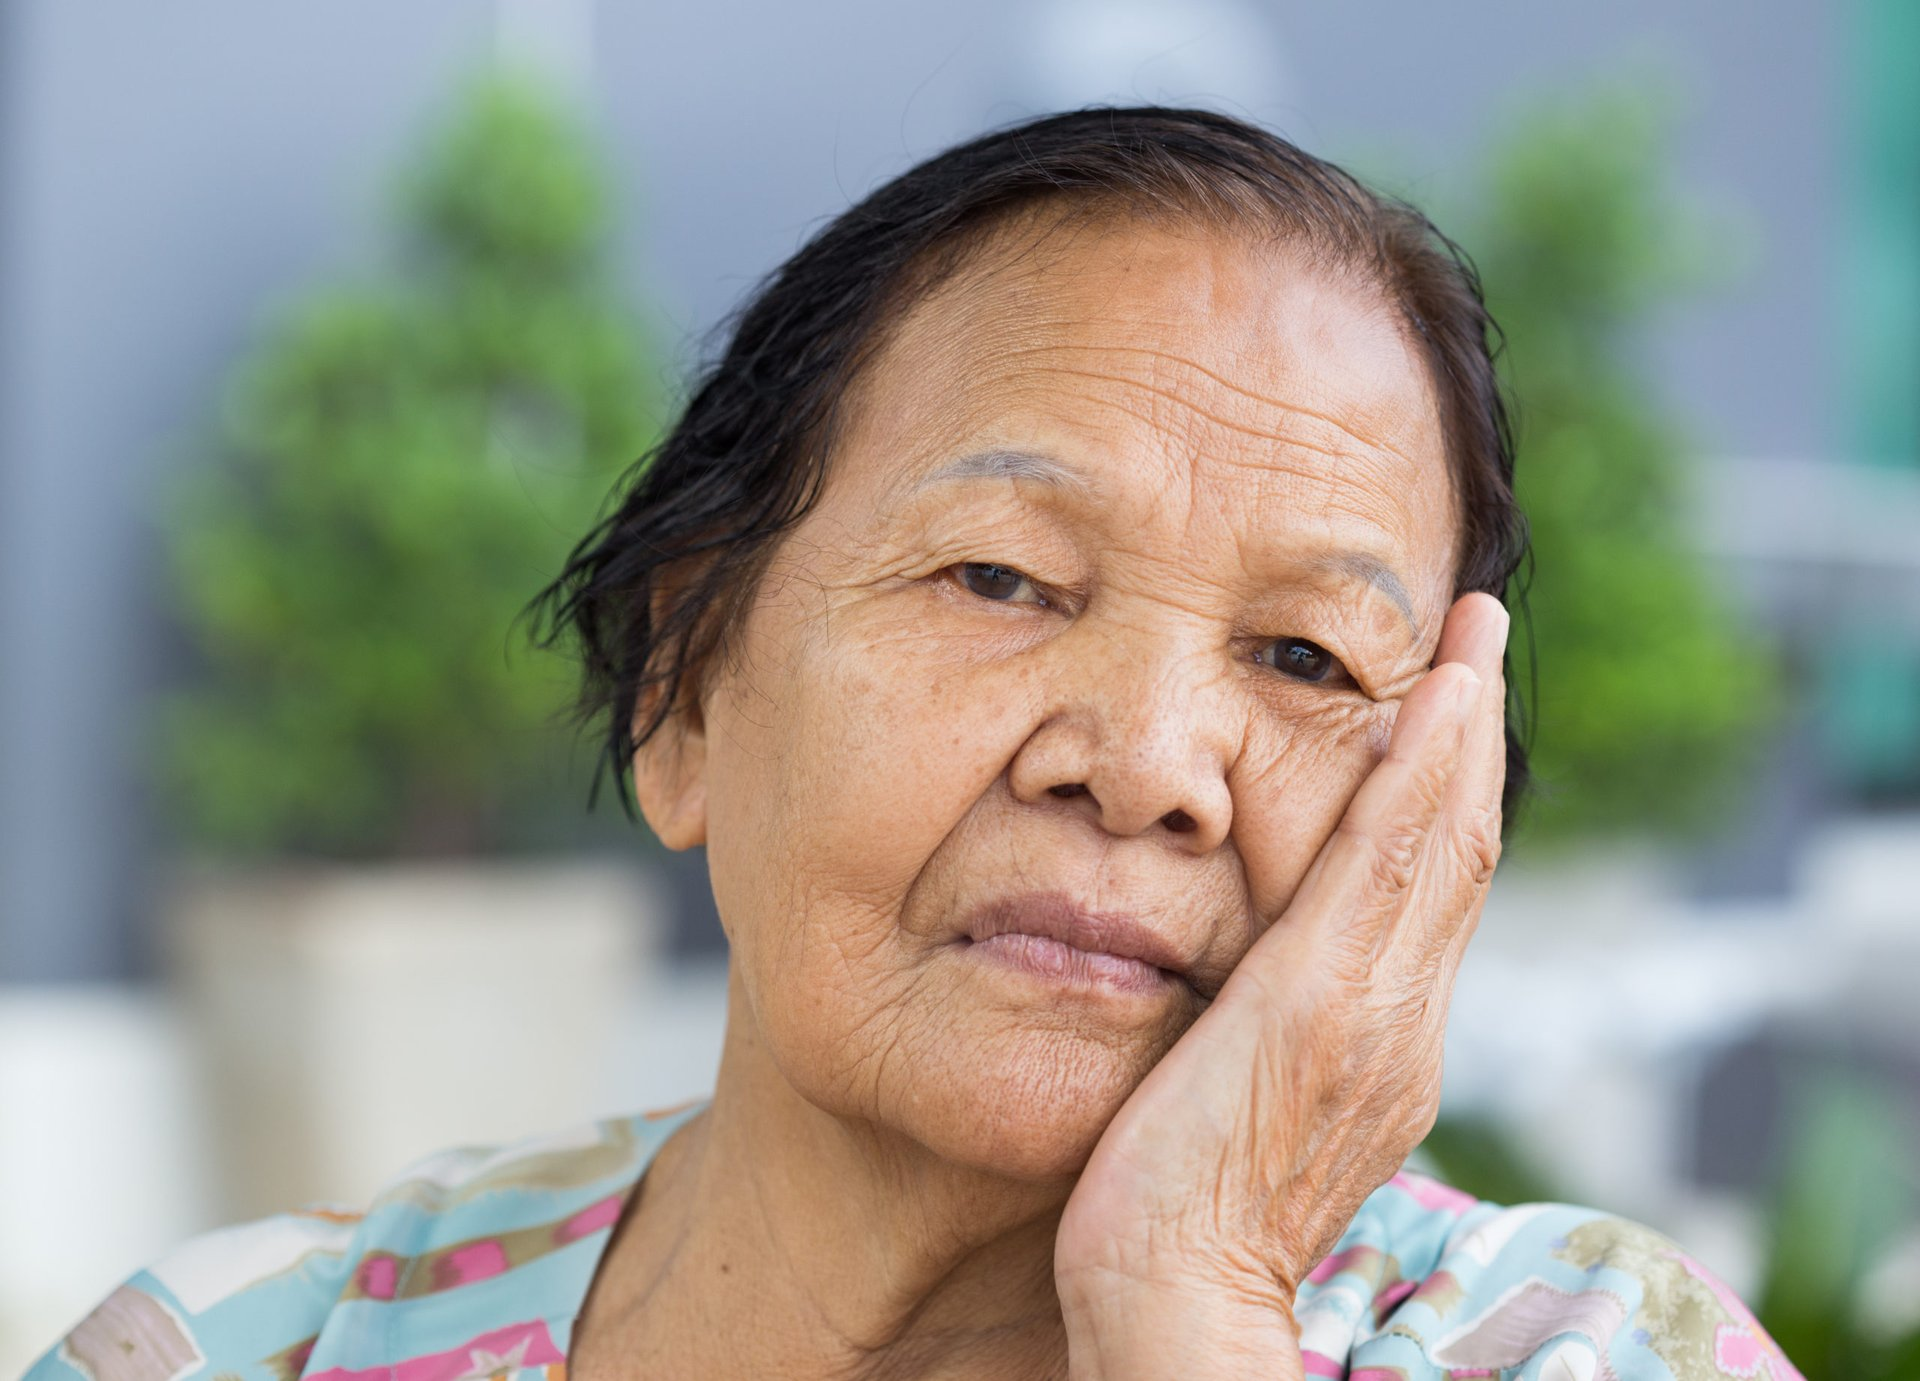 Unhappy senior woman